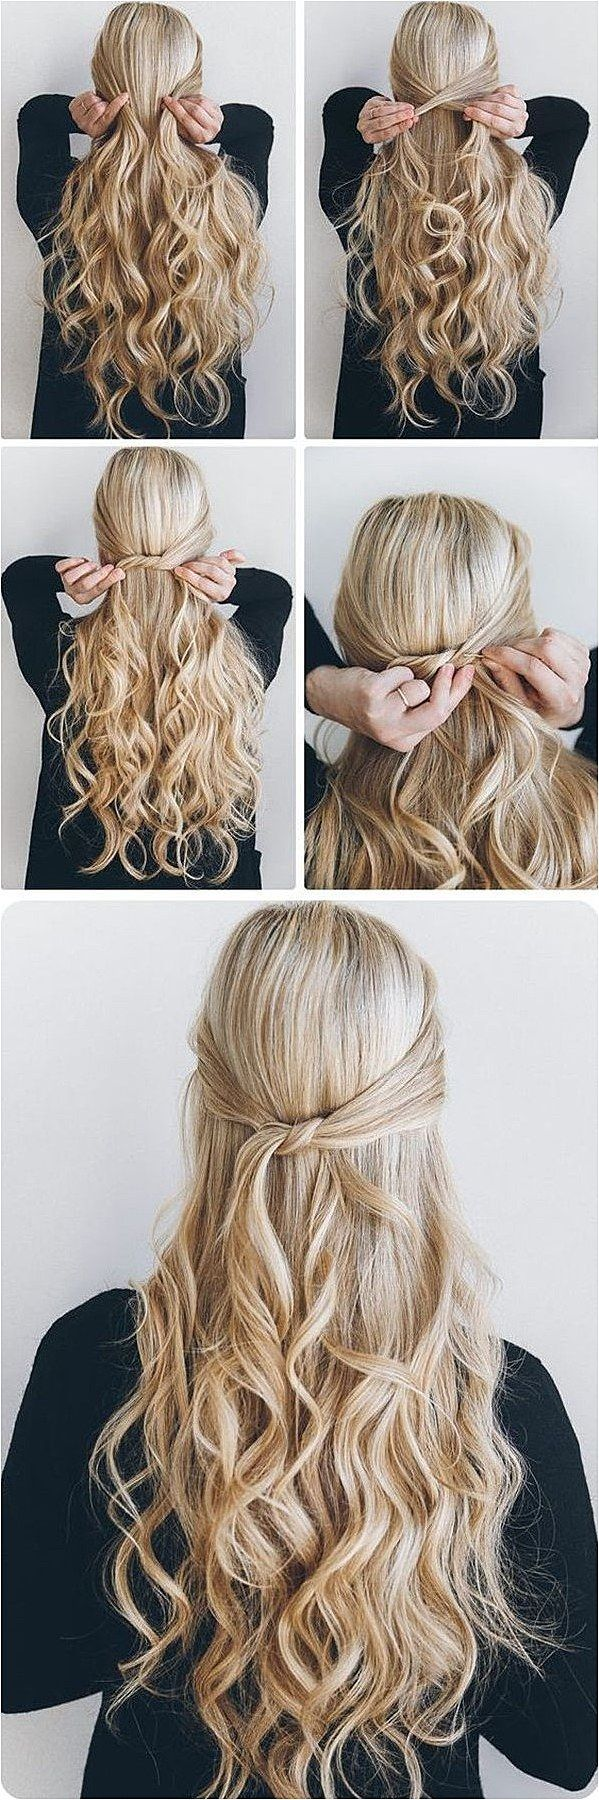 362 best easy braided hairstyles images on pinterest 40 easy hairstyles for schools to try in 2016 easybraid braidedhair click to solutioingenieria Gallery